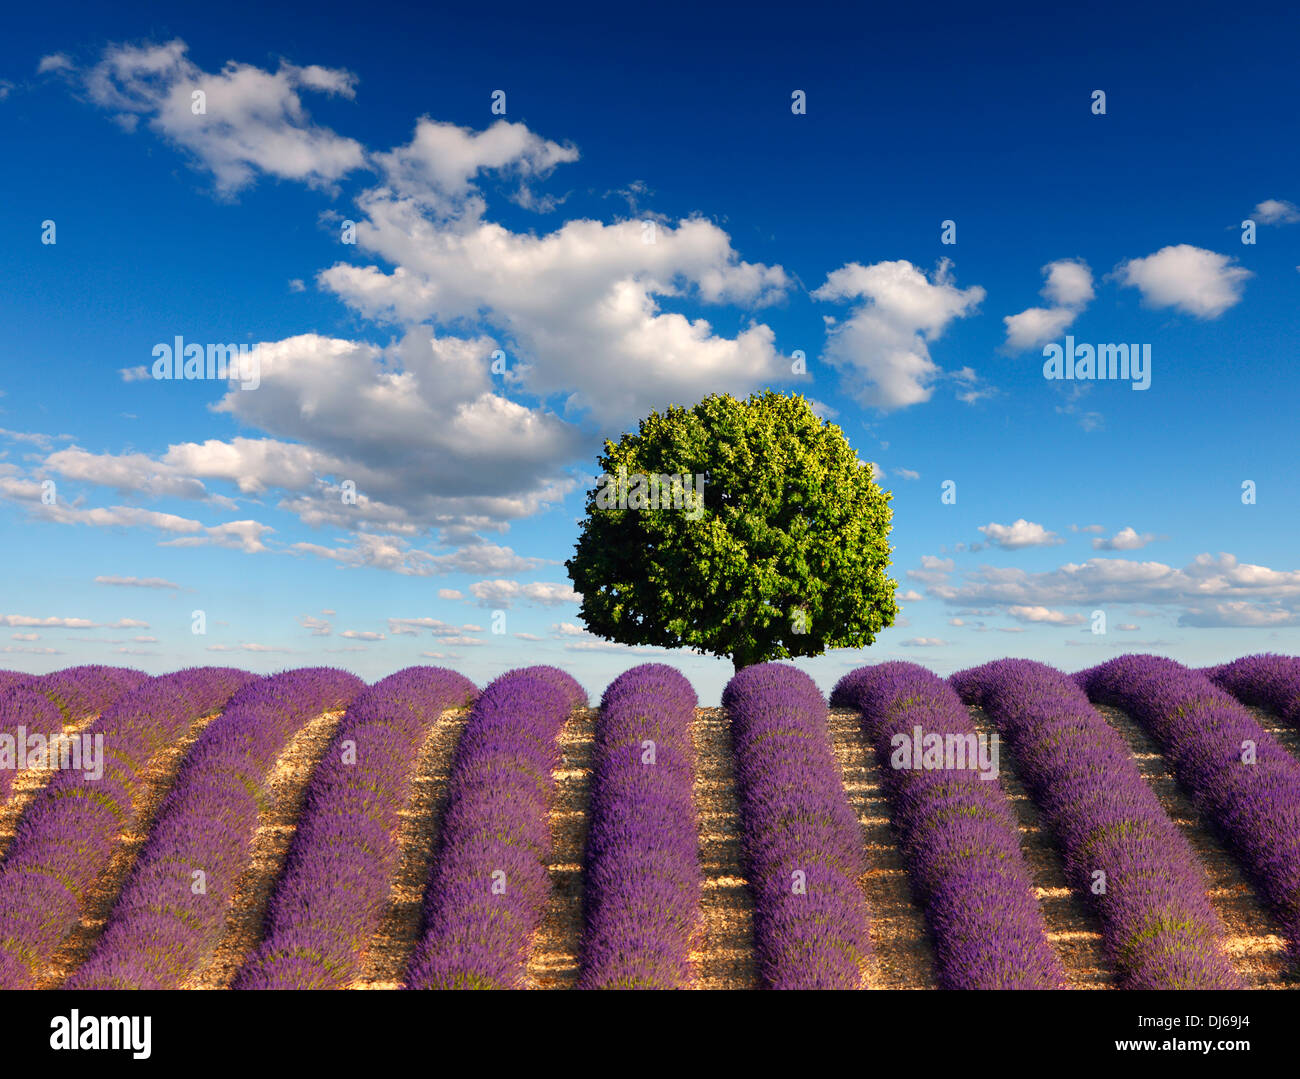 Tree in lavender field with a clouds on the blue sky. - Stock Image